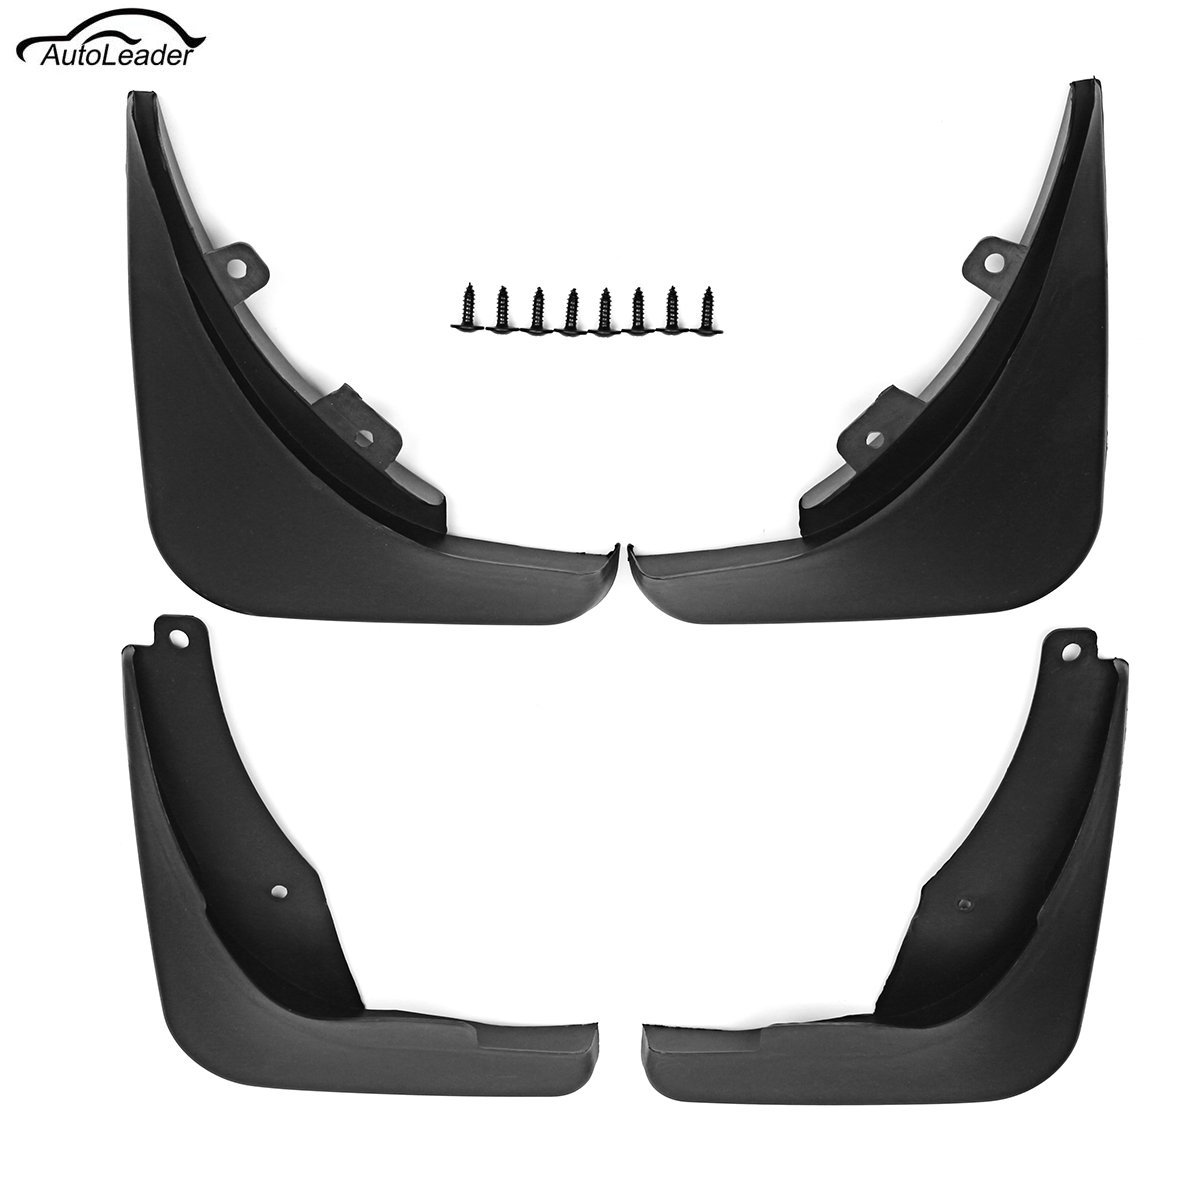 4pcs car Front Rear Mud Flap Mudguards for Vauxhall Opel Astra J /Buick Verano 2010-2016 предупреждающие индикаторы pawaca rear end buick